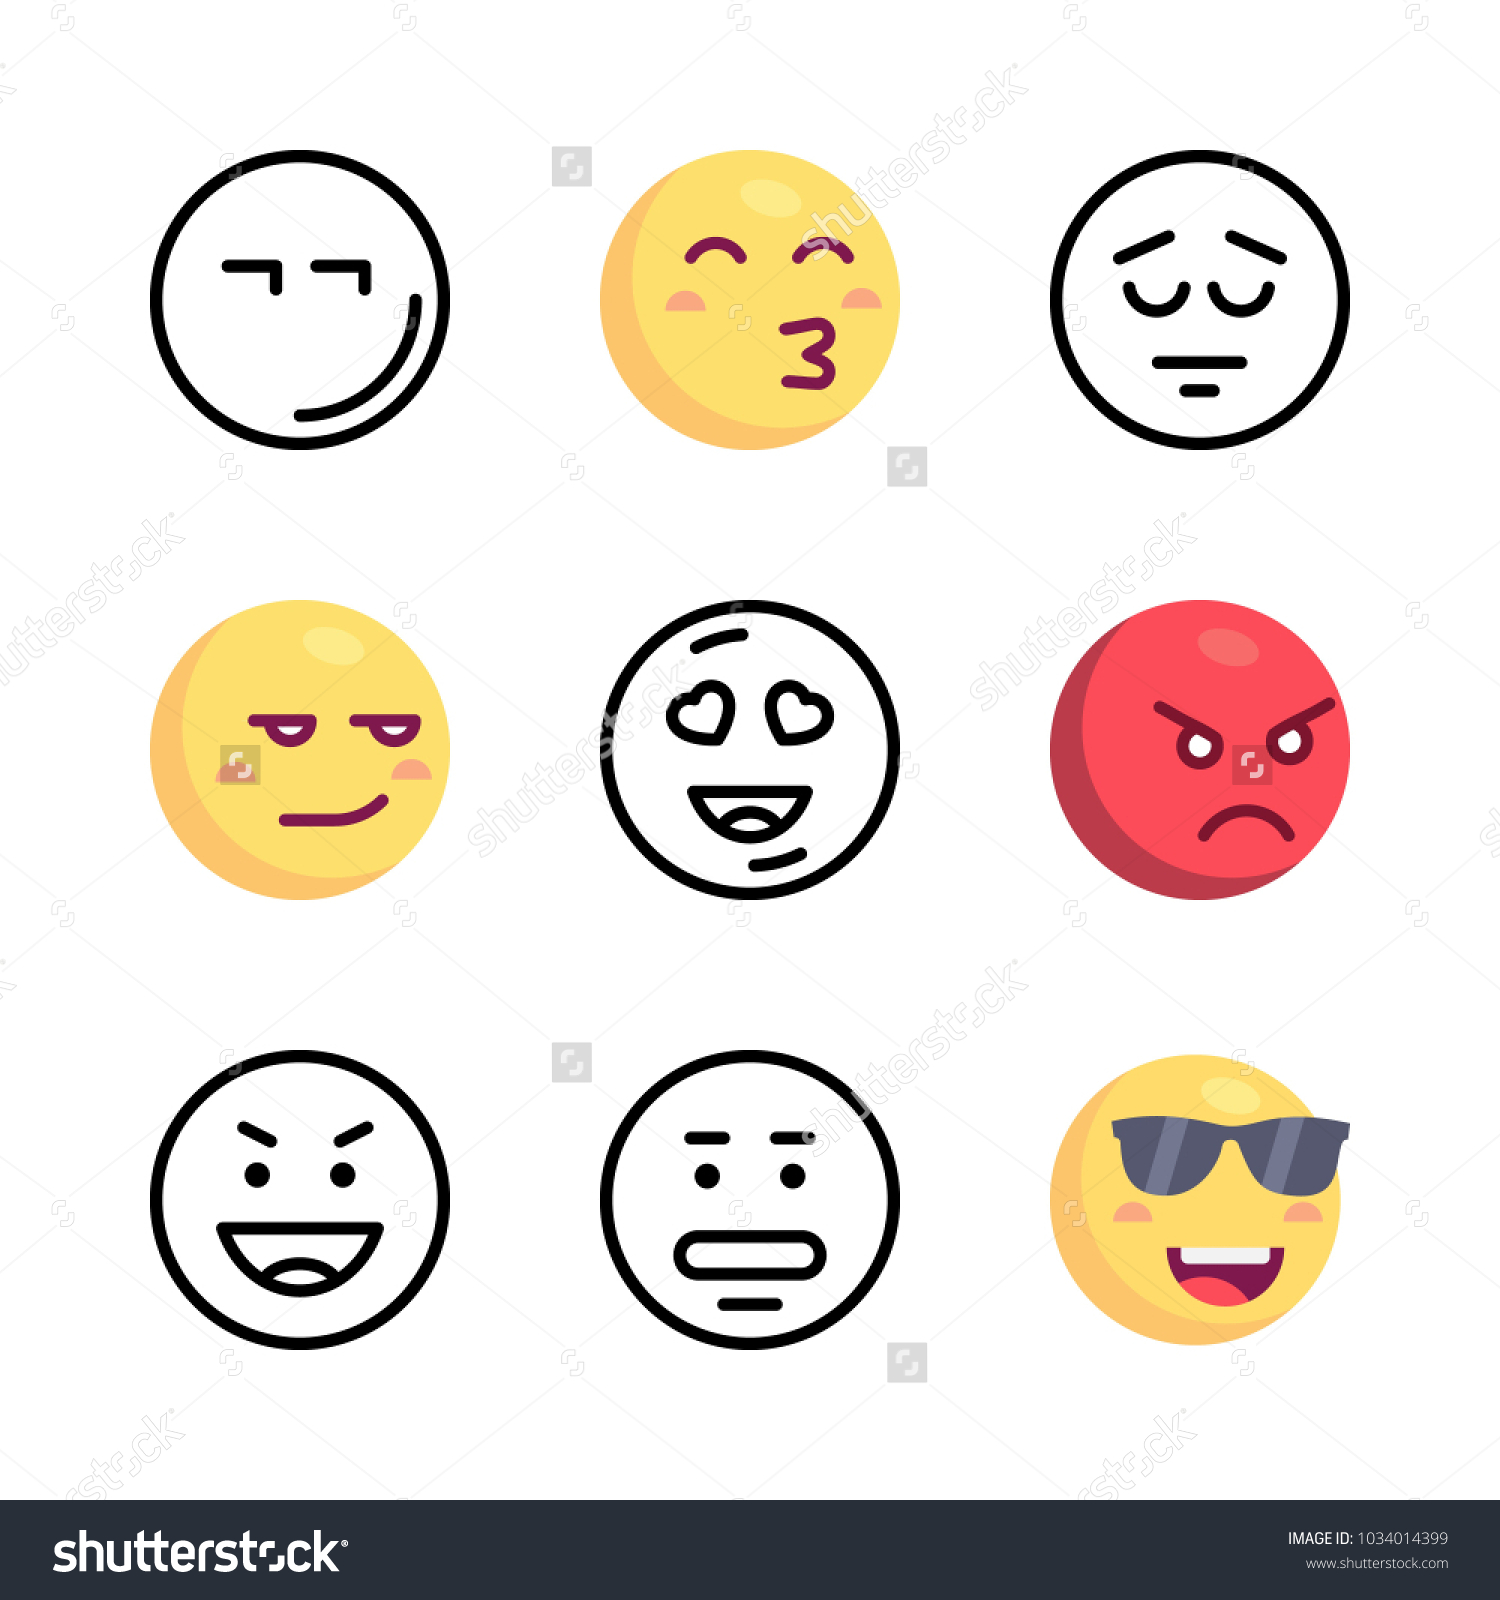 Icons emoji vector cool emoji kiss stock vector 1034014399 icons emoji vector cool emoji kiss emoji and angry biocorpaavc Images